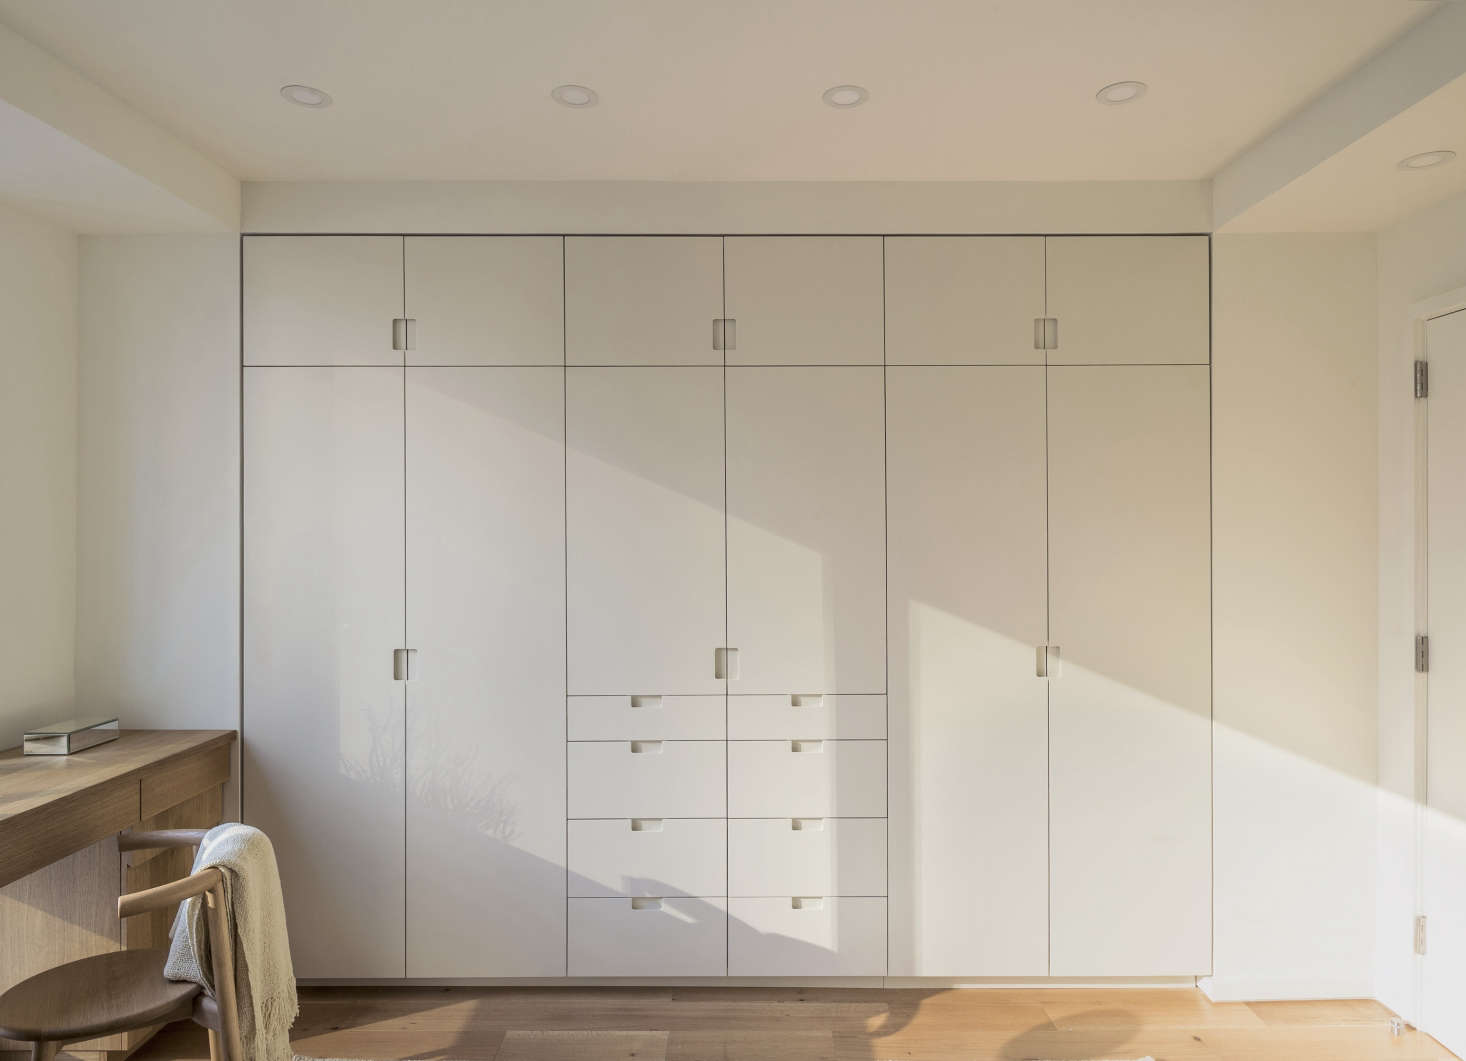 In a workstead designed bedroom built in closets feature painted millwork with flush